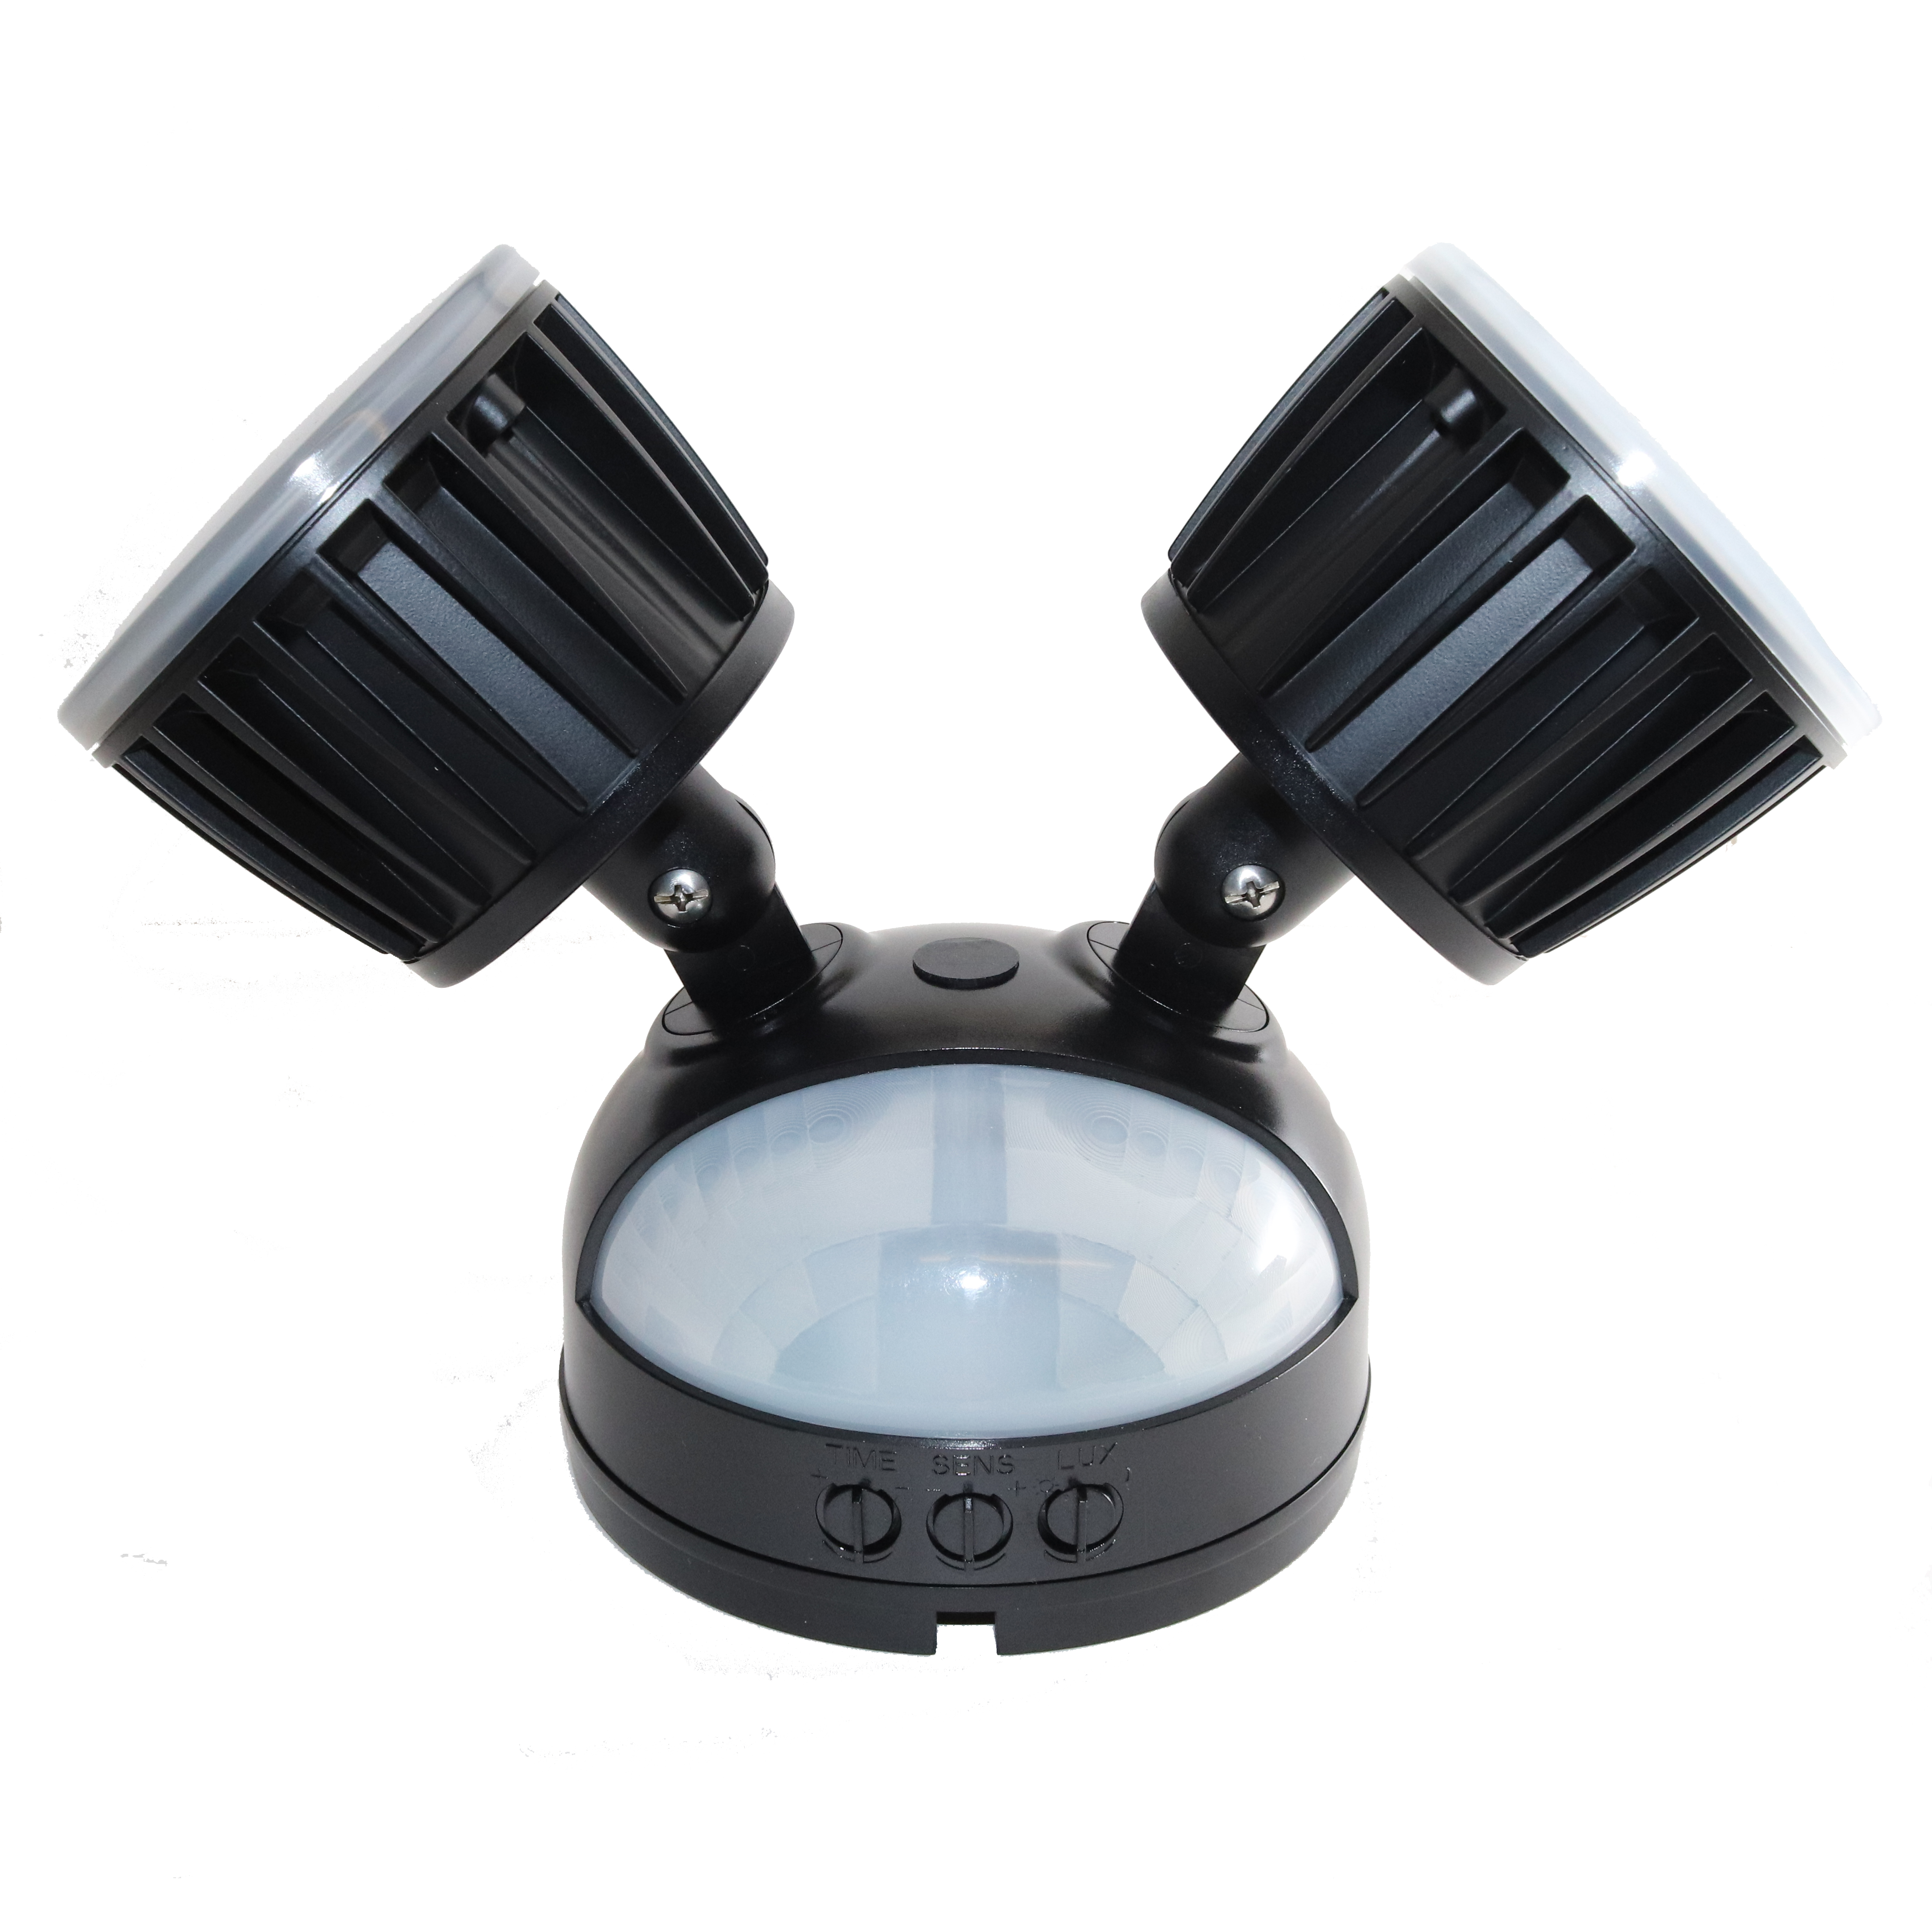 Nw 16w Twin Security Pir Led Light Black Nightwatcher